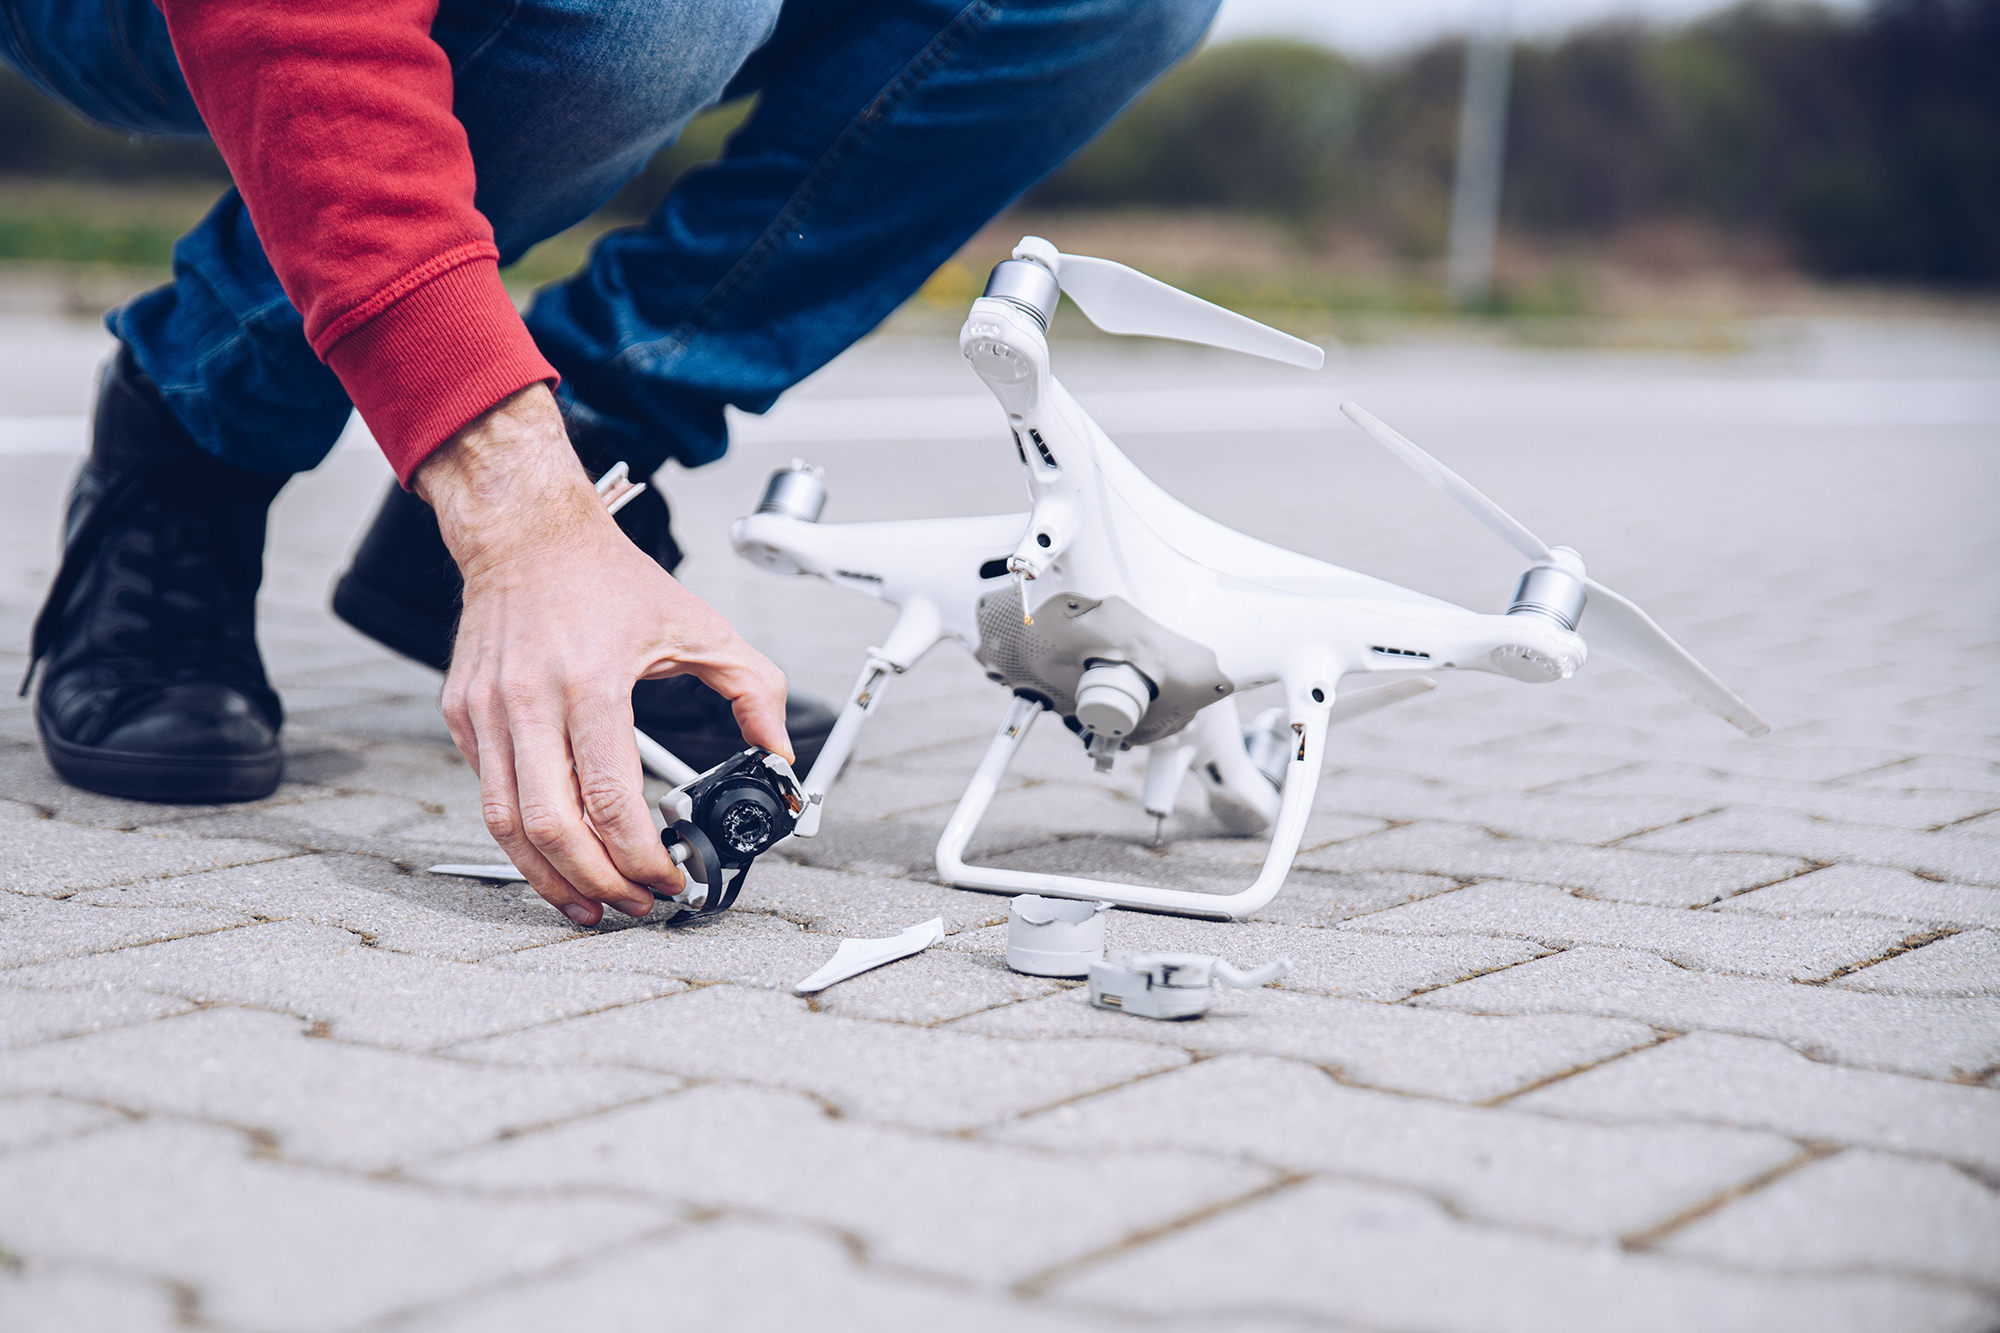 Learning-from-a-drone-crash